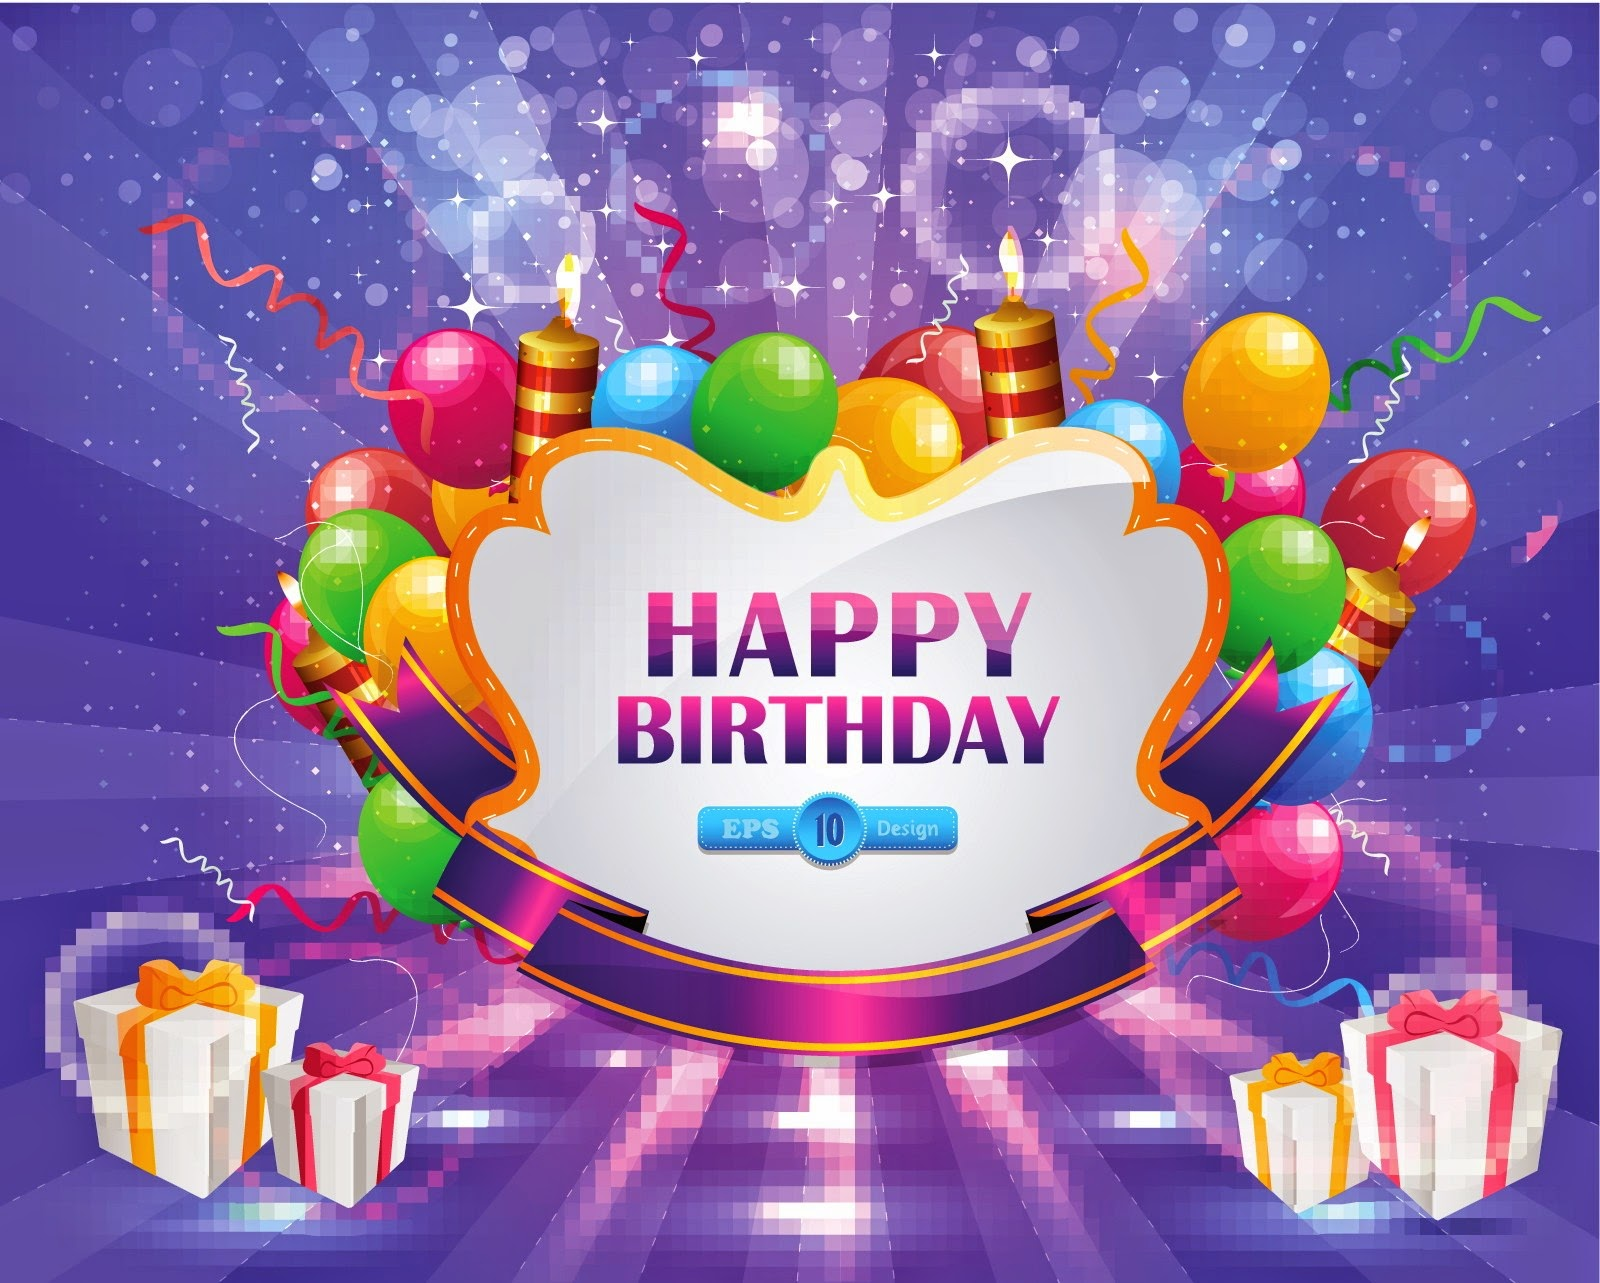 birthday wishes images free download ; 832ae902a0e2af35bd649e81f818b0cf